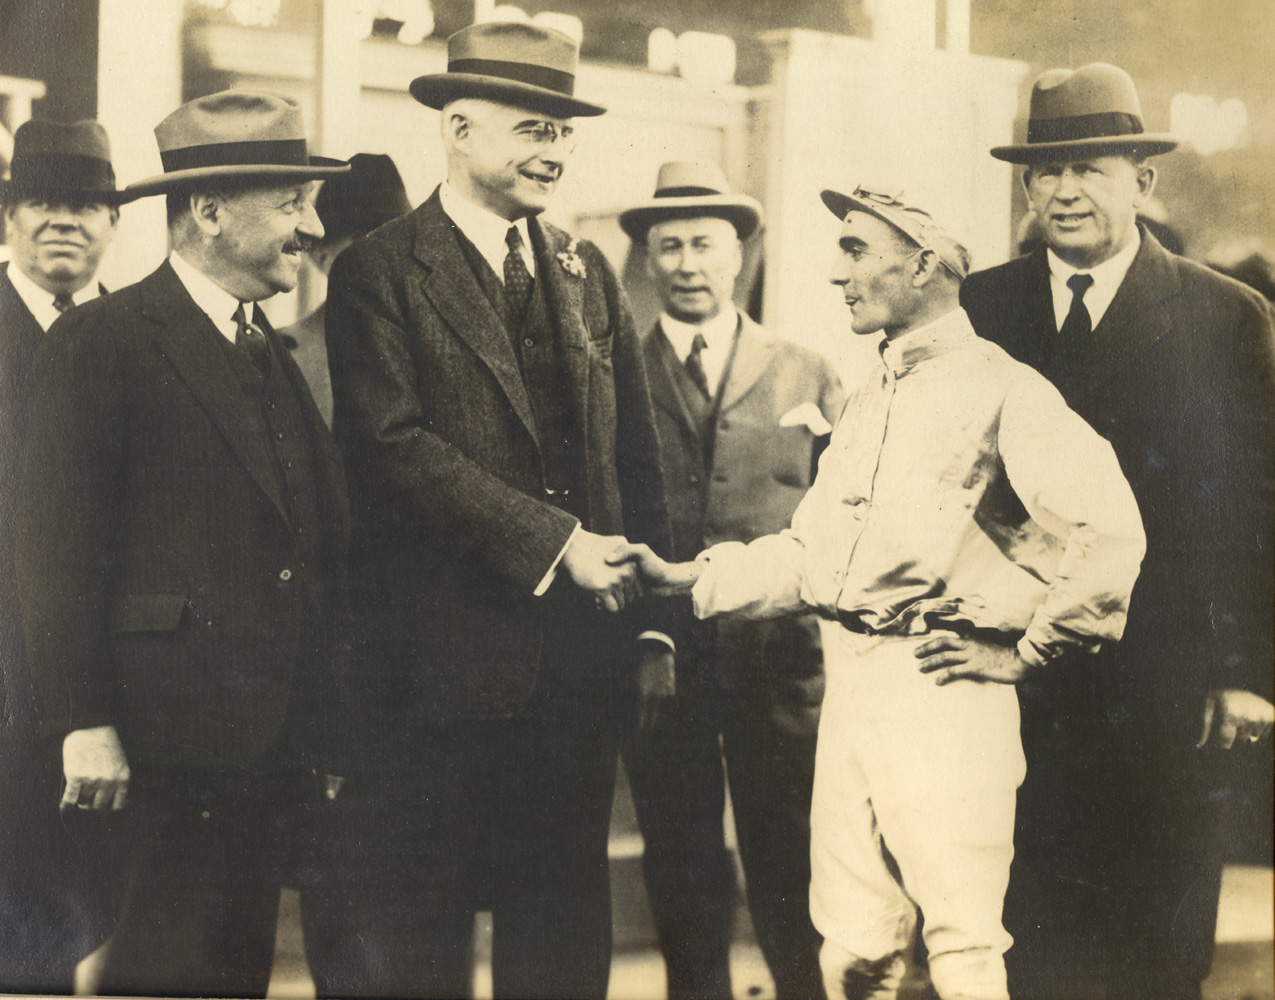 Owner Walter J. Salmon, Maryland Governor Albert Ritchie, jockey John Maiben, and trainer T. J. Healey celebrating their 1926 Preakness victory with Display (Drucker and Company/Museum Collection)